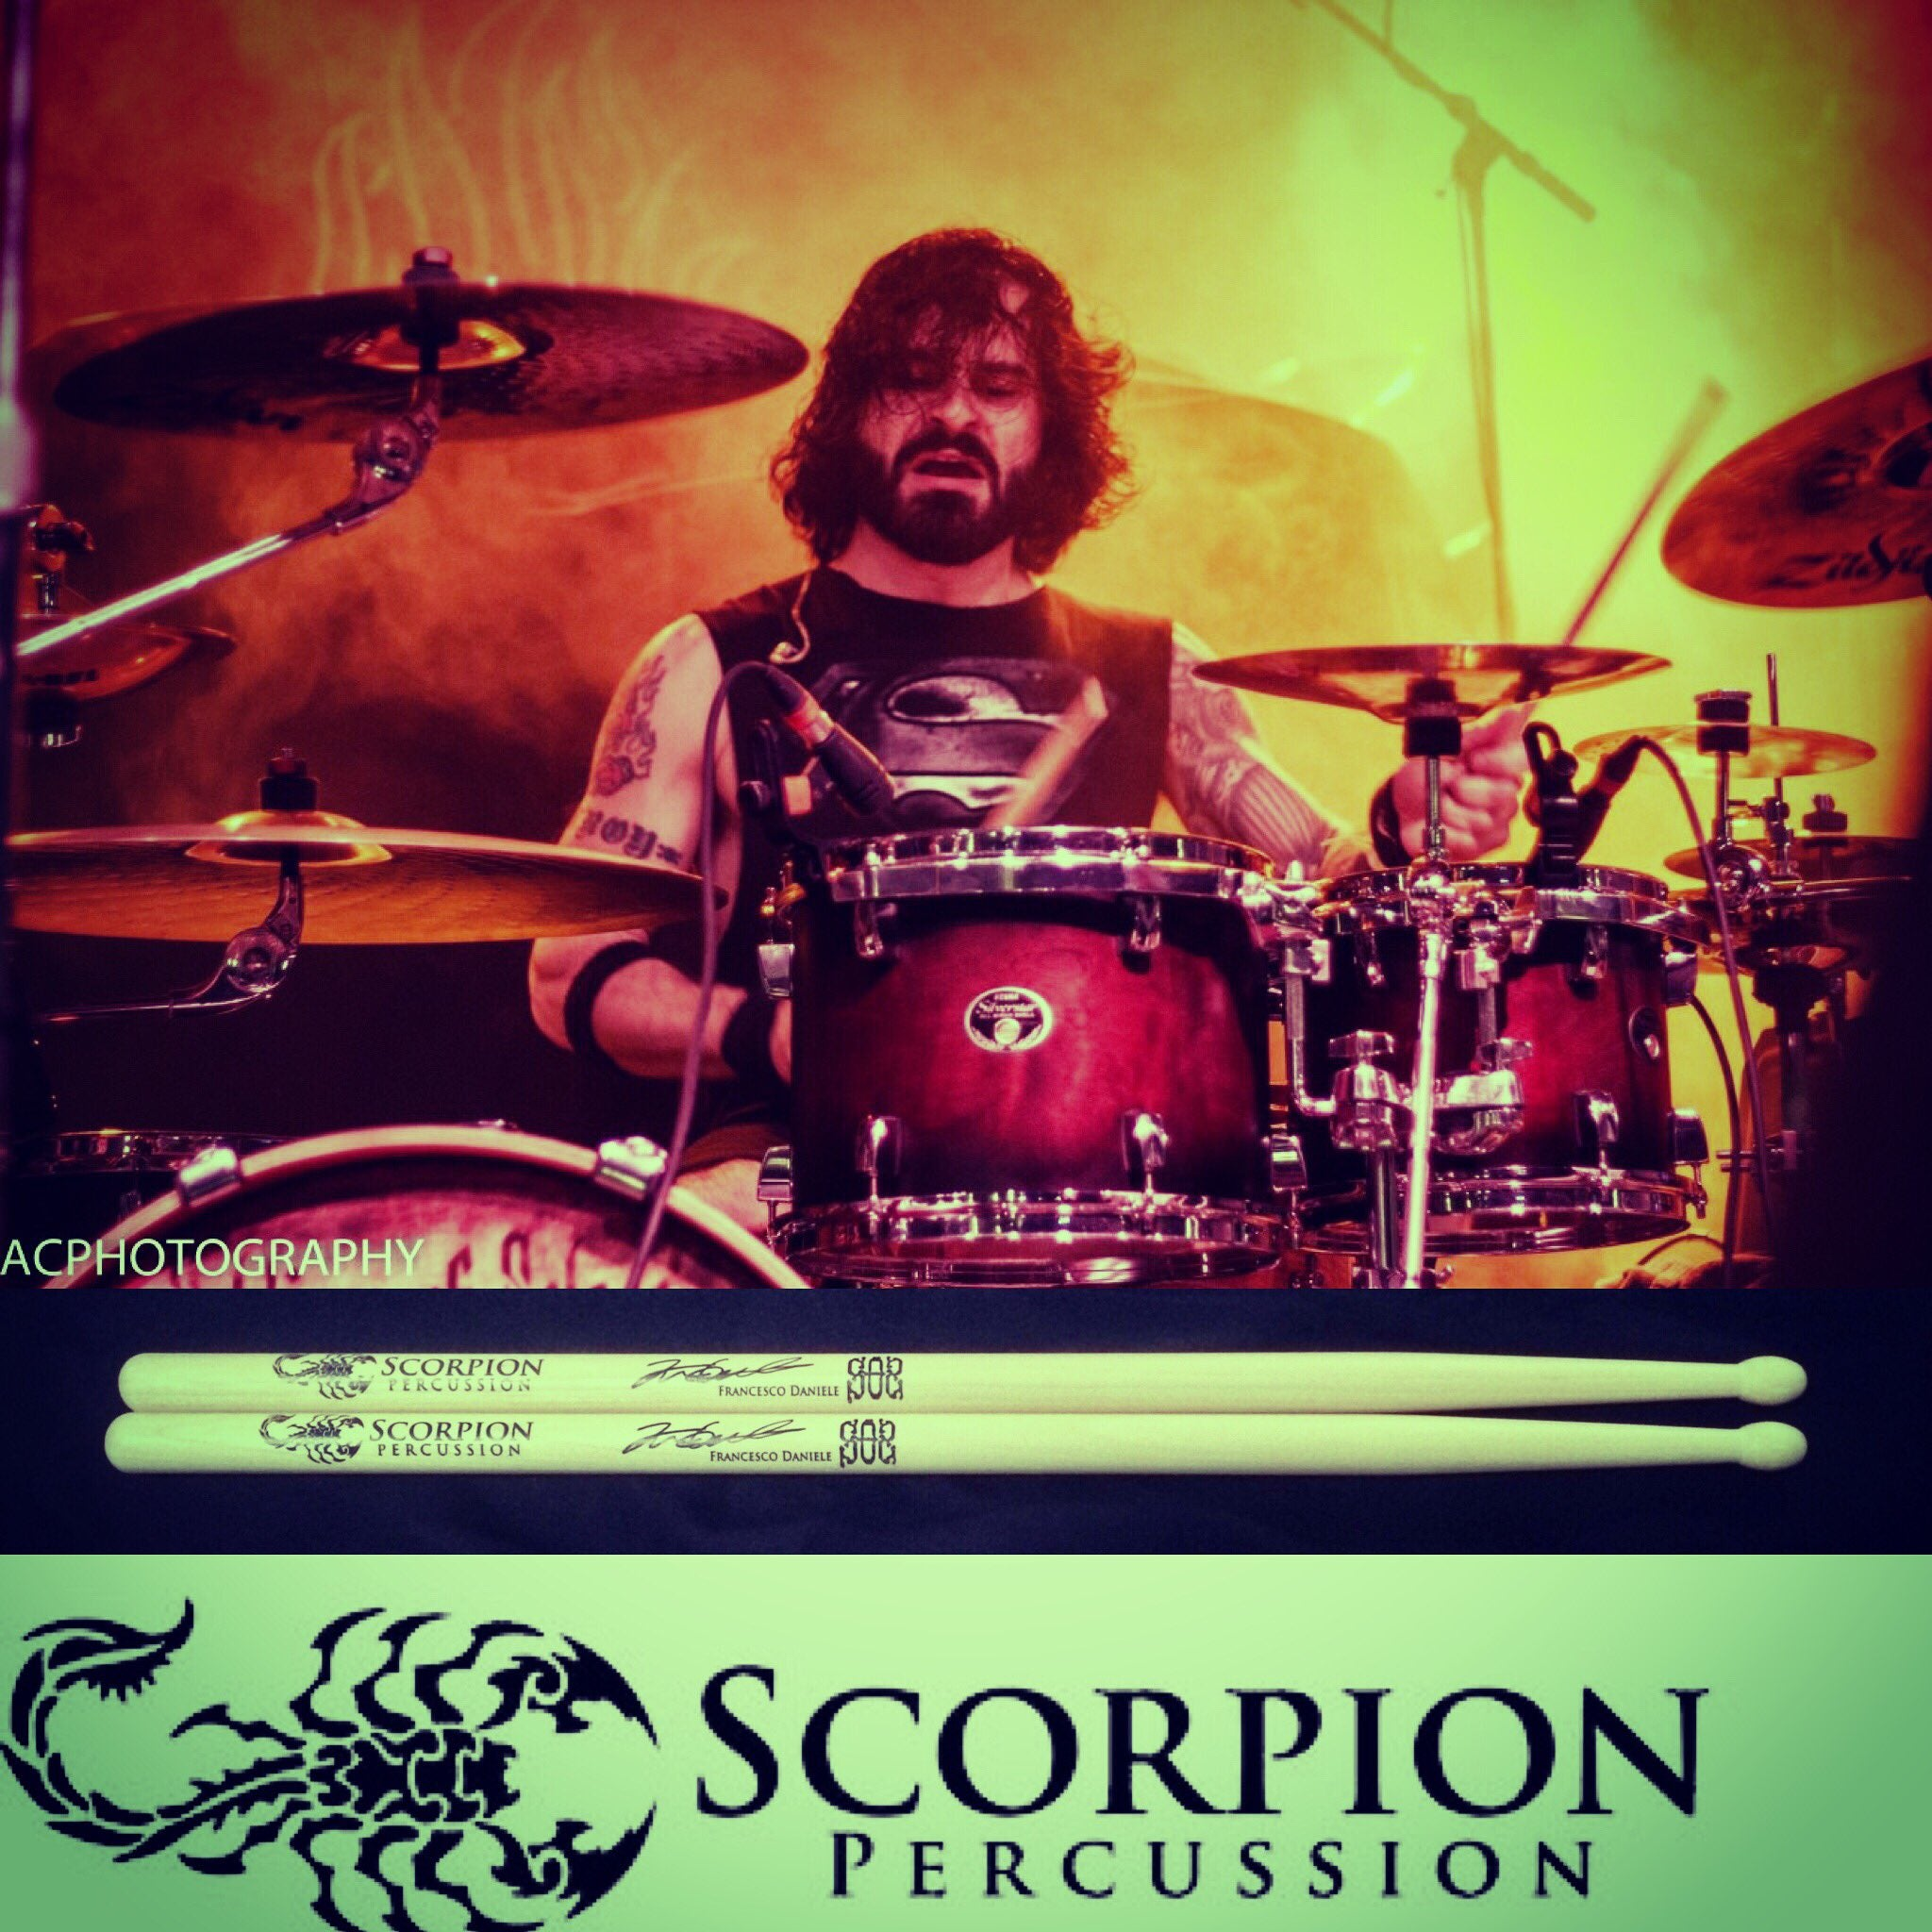 Drummer Francesco Daniele poses with Scorpion Percussion drumsticks behind his drumkit